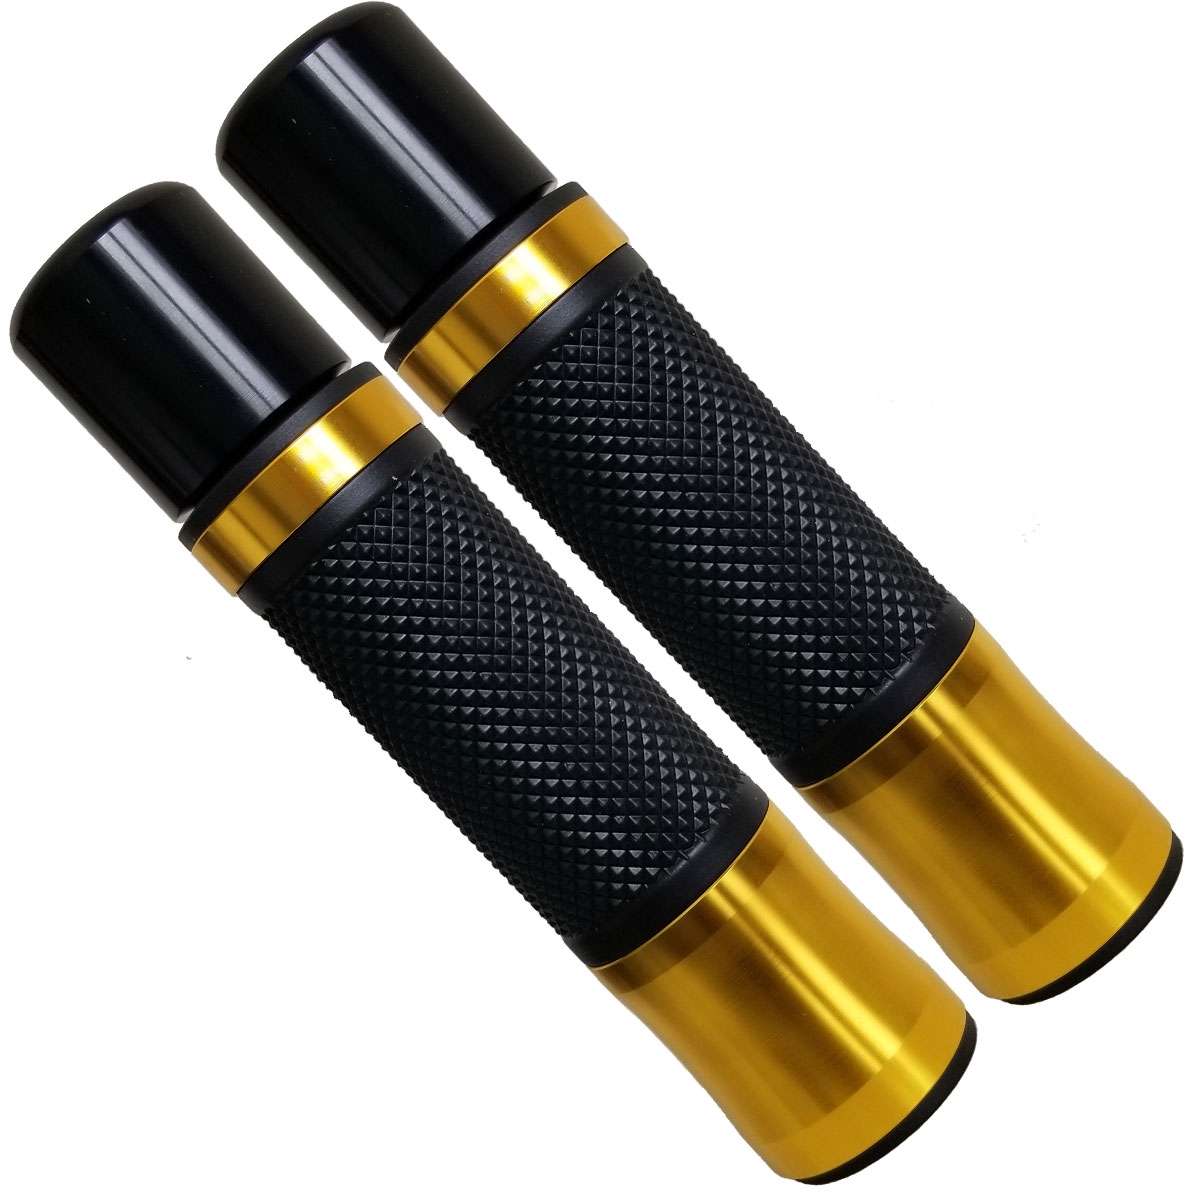 gold-black-universal-grips-sixty61-2